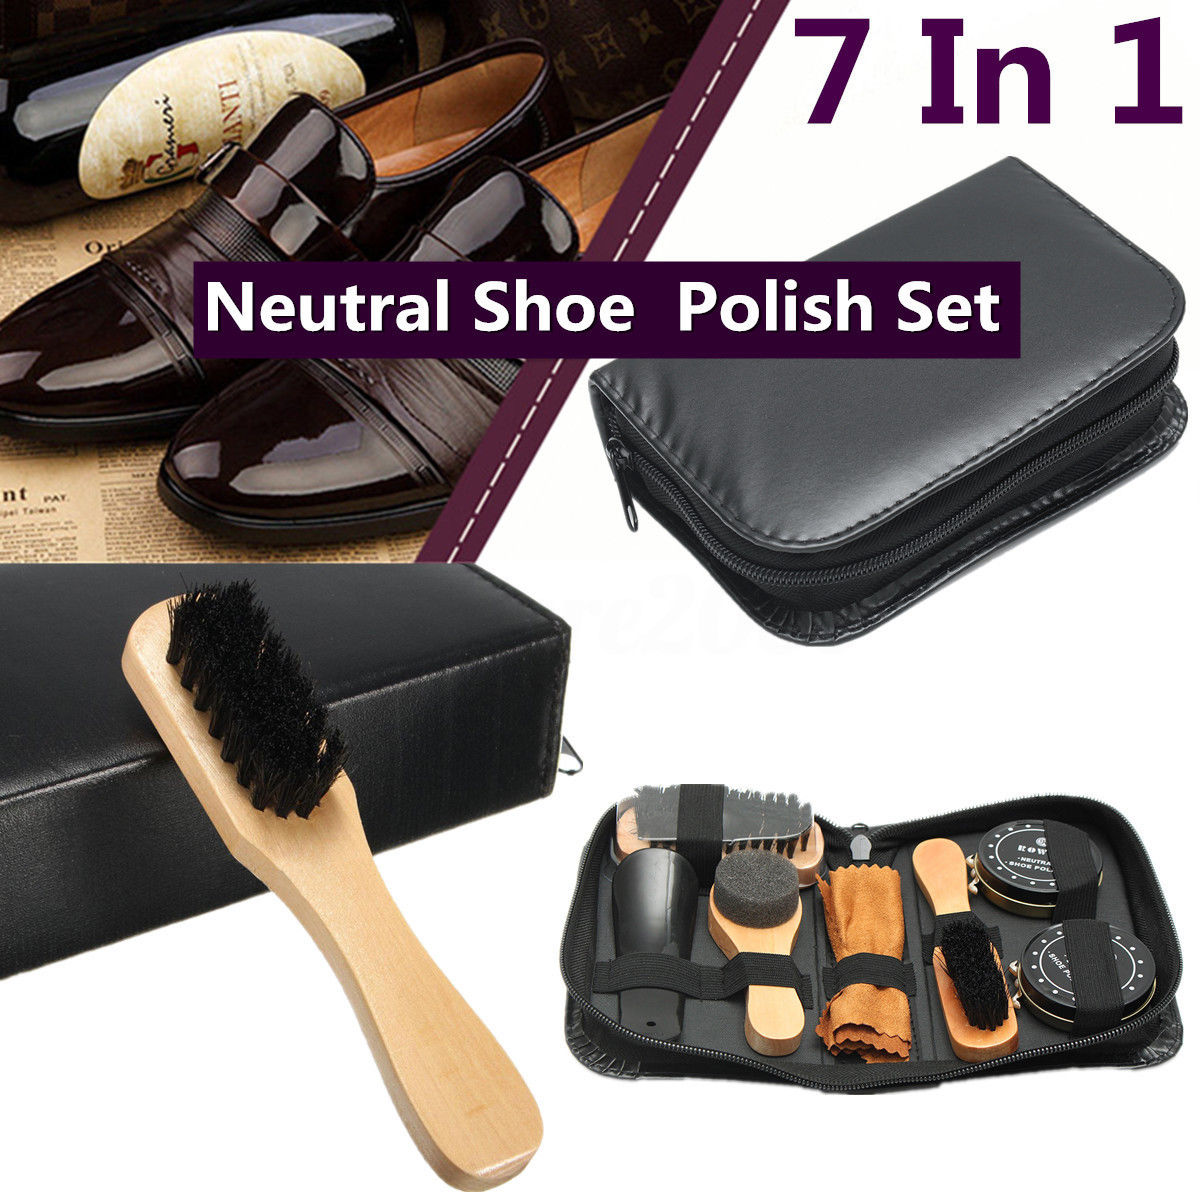 Does Shoe Polish Waterproof Leather